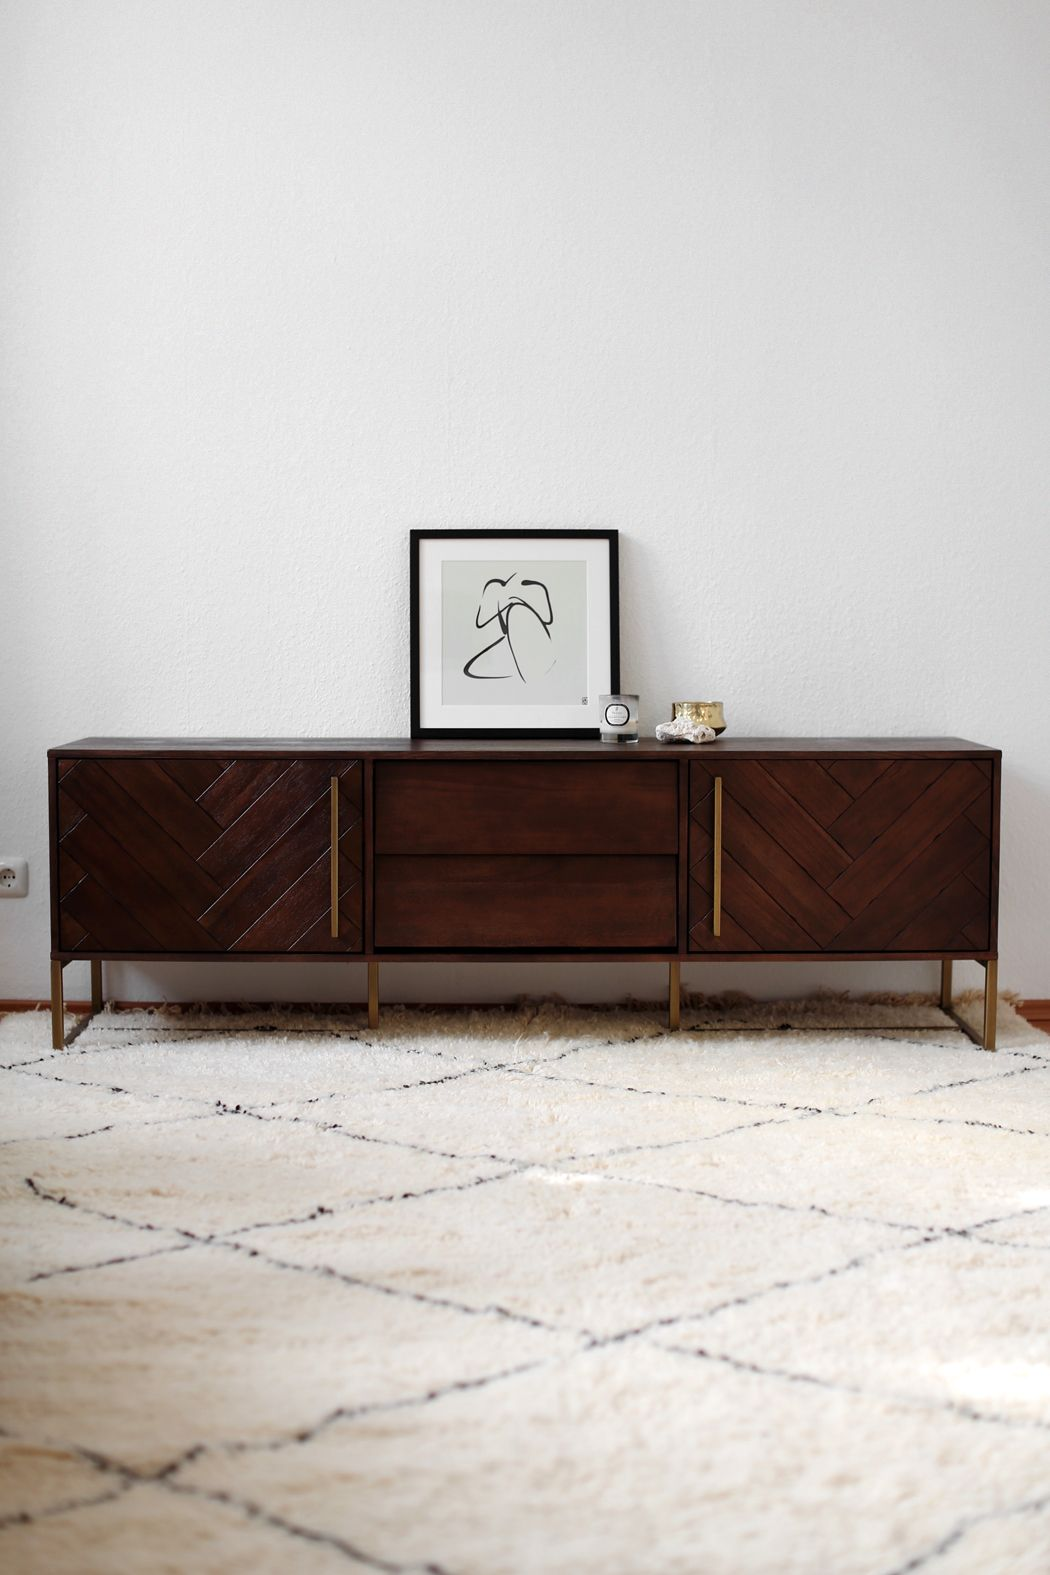 Exceptional Home Office Details With Dutchbone Vintage Mid Century Inspired Sideboard  With Brass Details, 60s Moroccan Beni Ourain Berber Rug, Illume And Parks  London ...